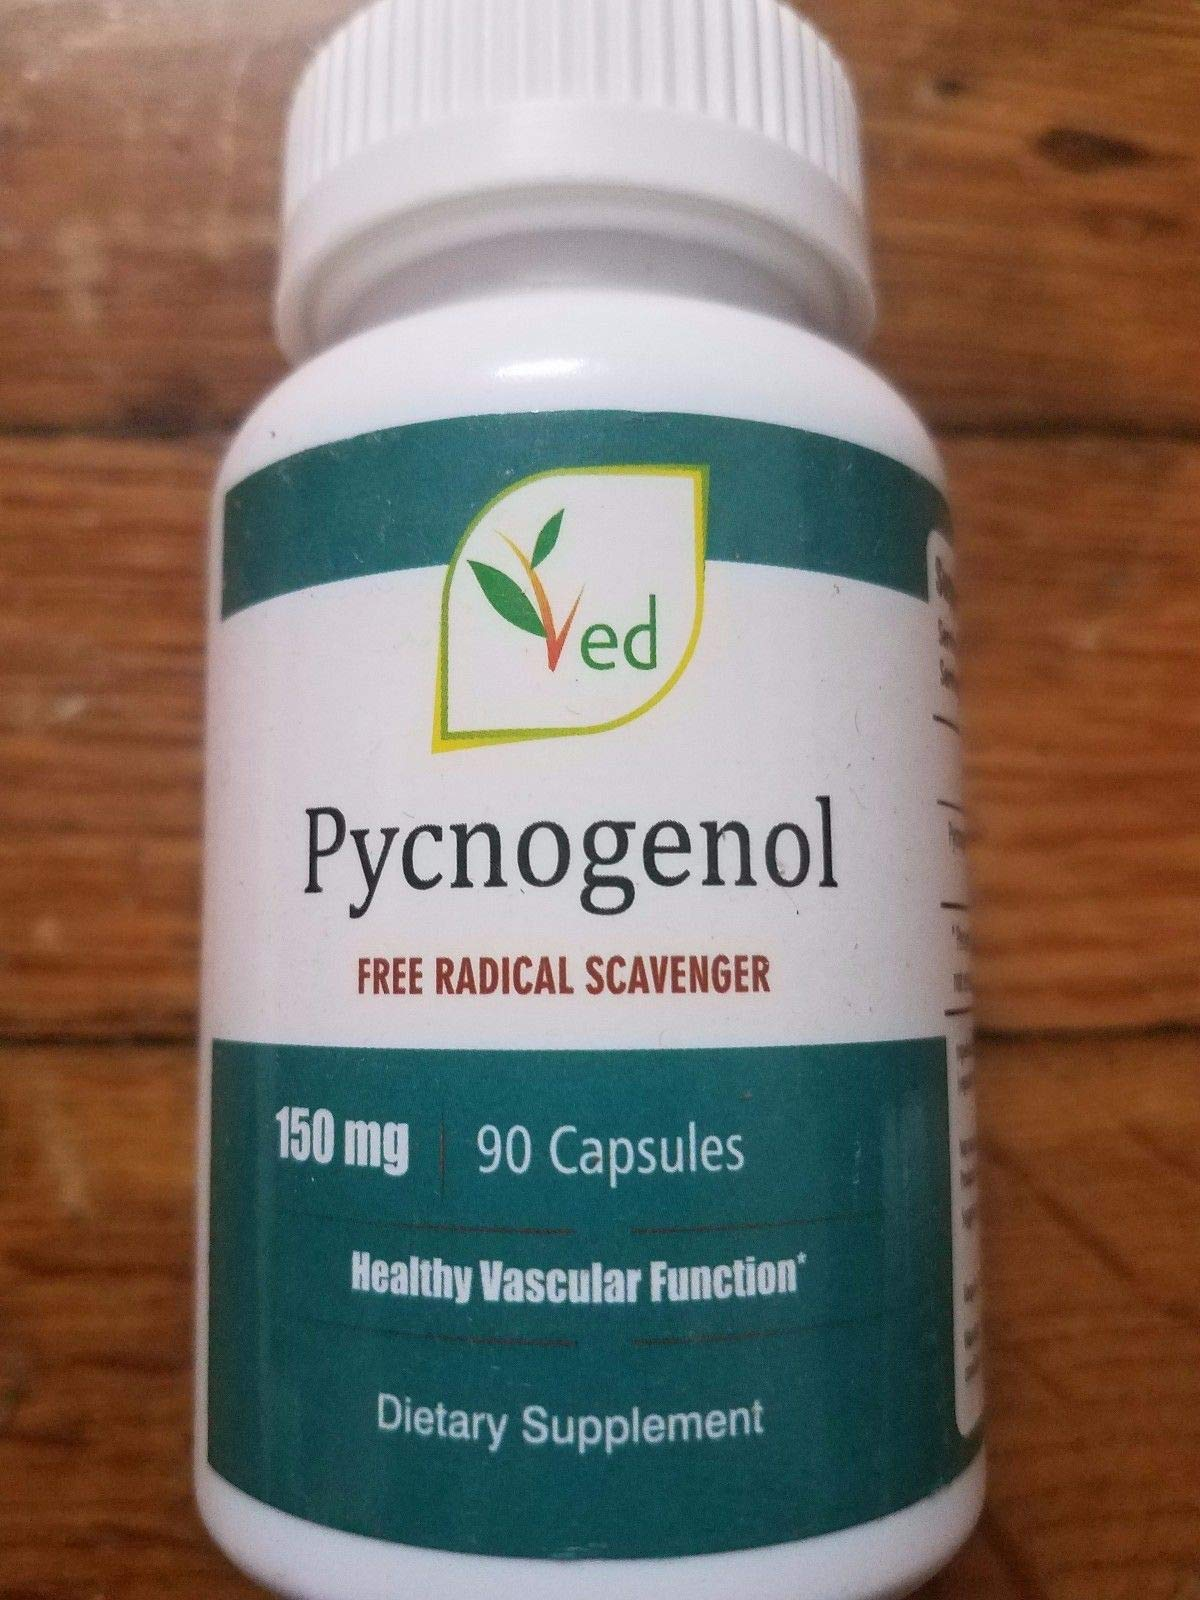 Pycnoge 150mg 90 Capsules Antioxidants Natural and Organic by VED